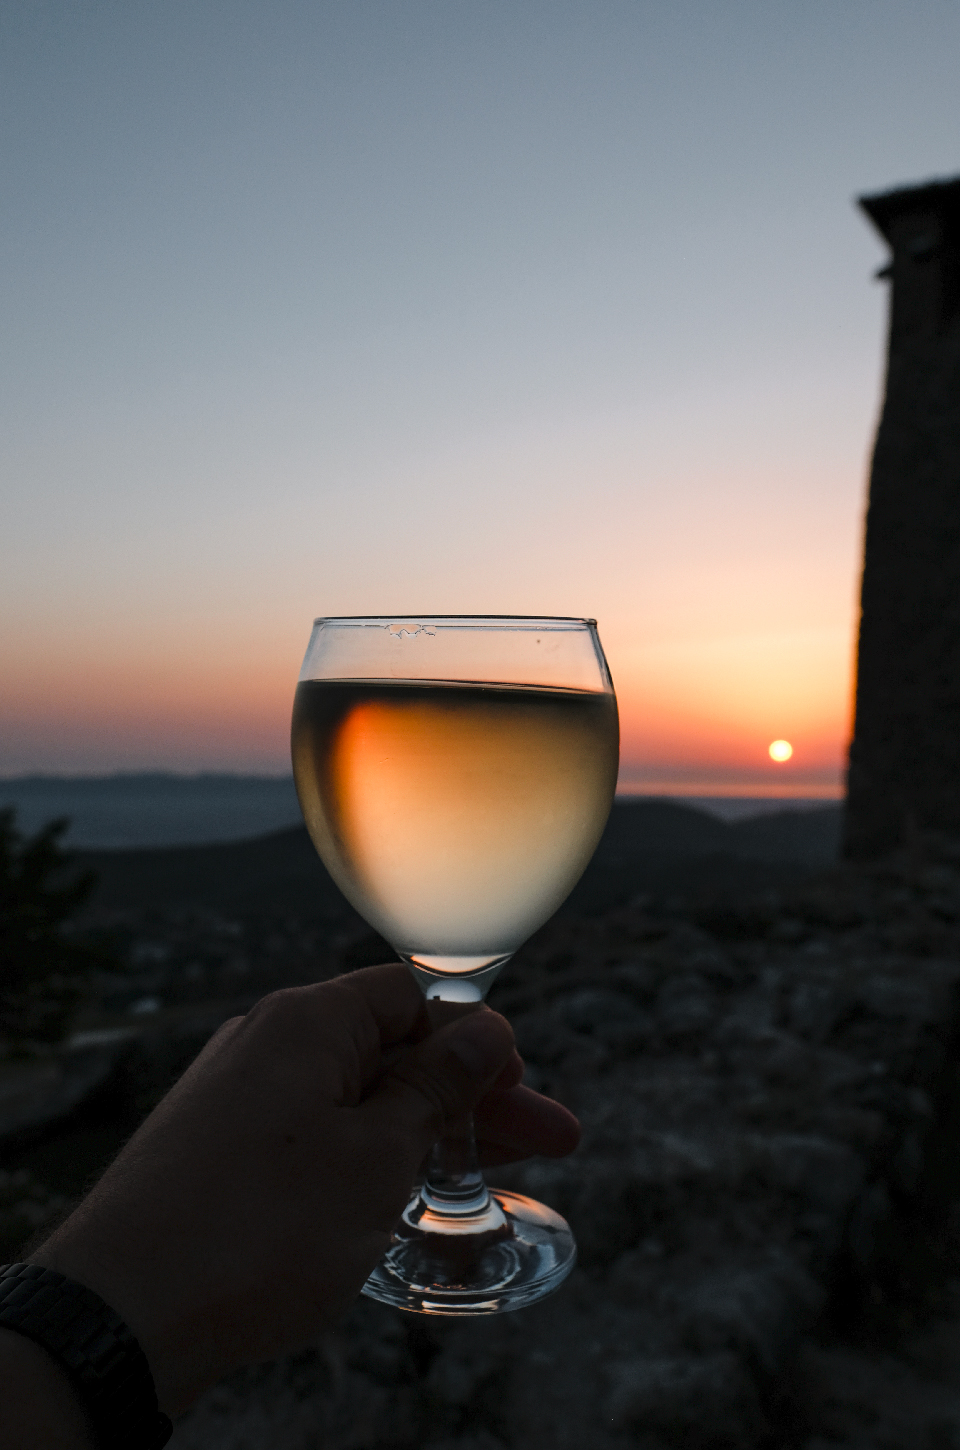 Glass of white wine infront of the sun at sunset